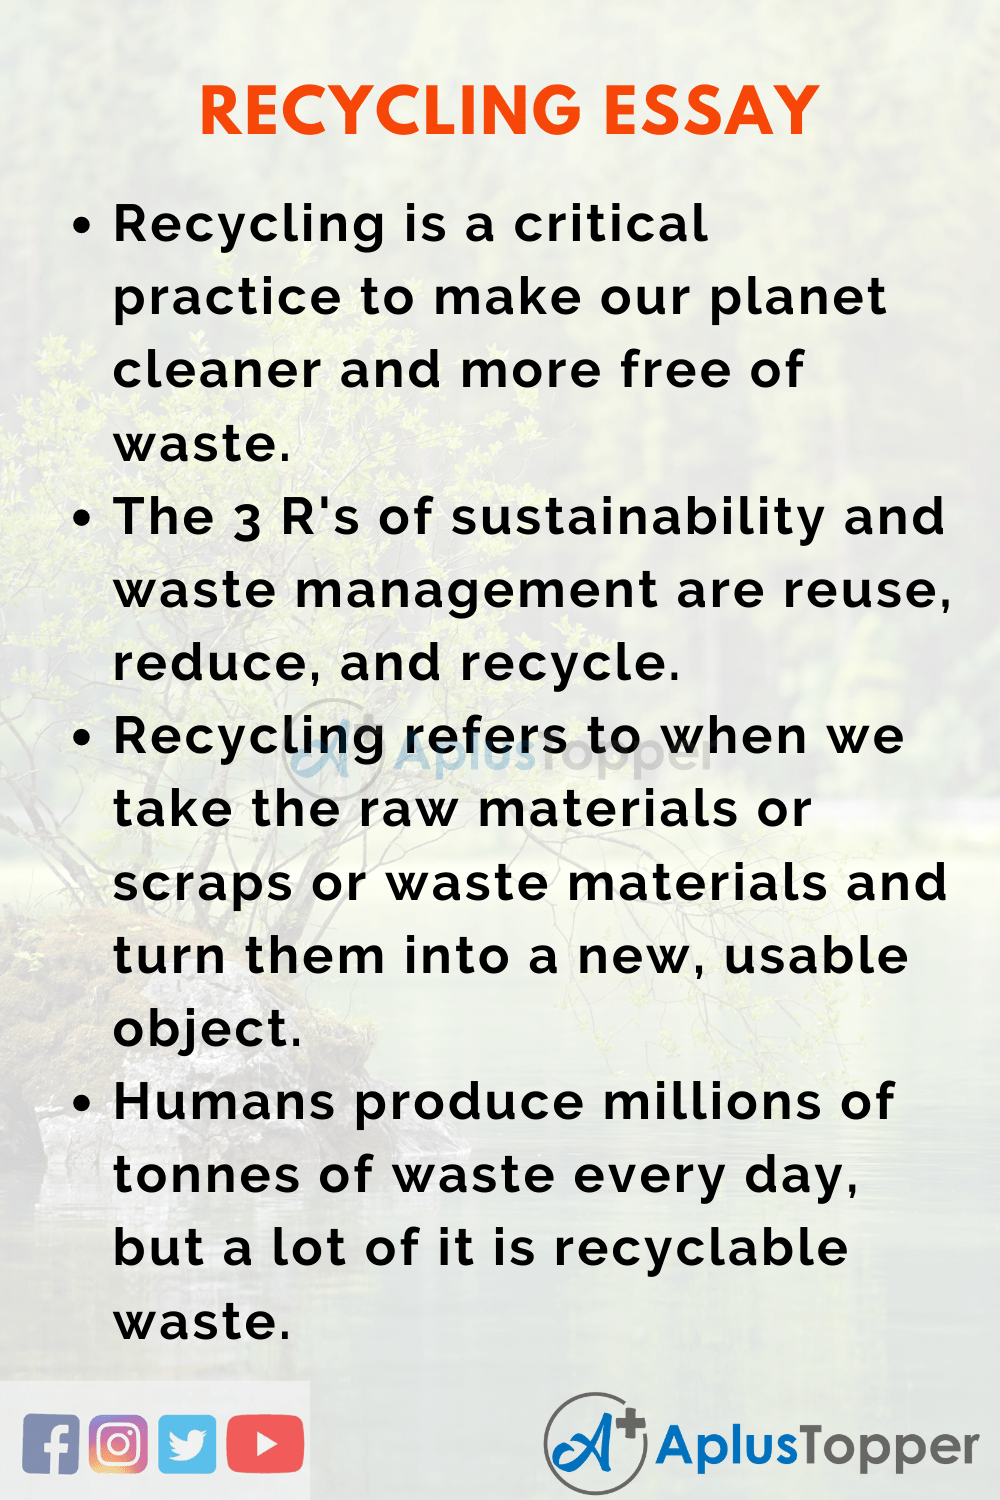 Essay on Recycling